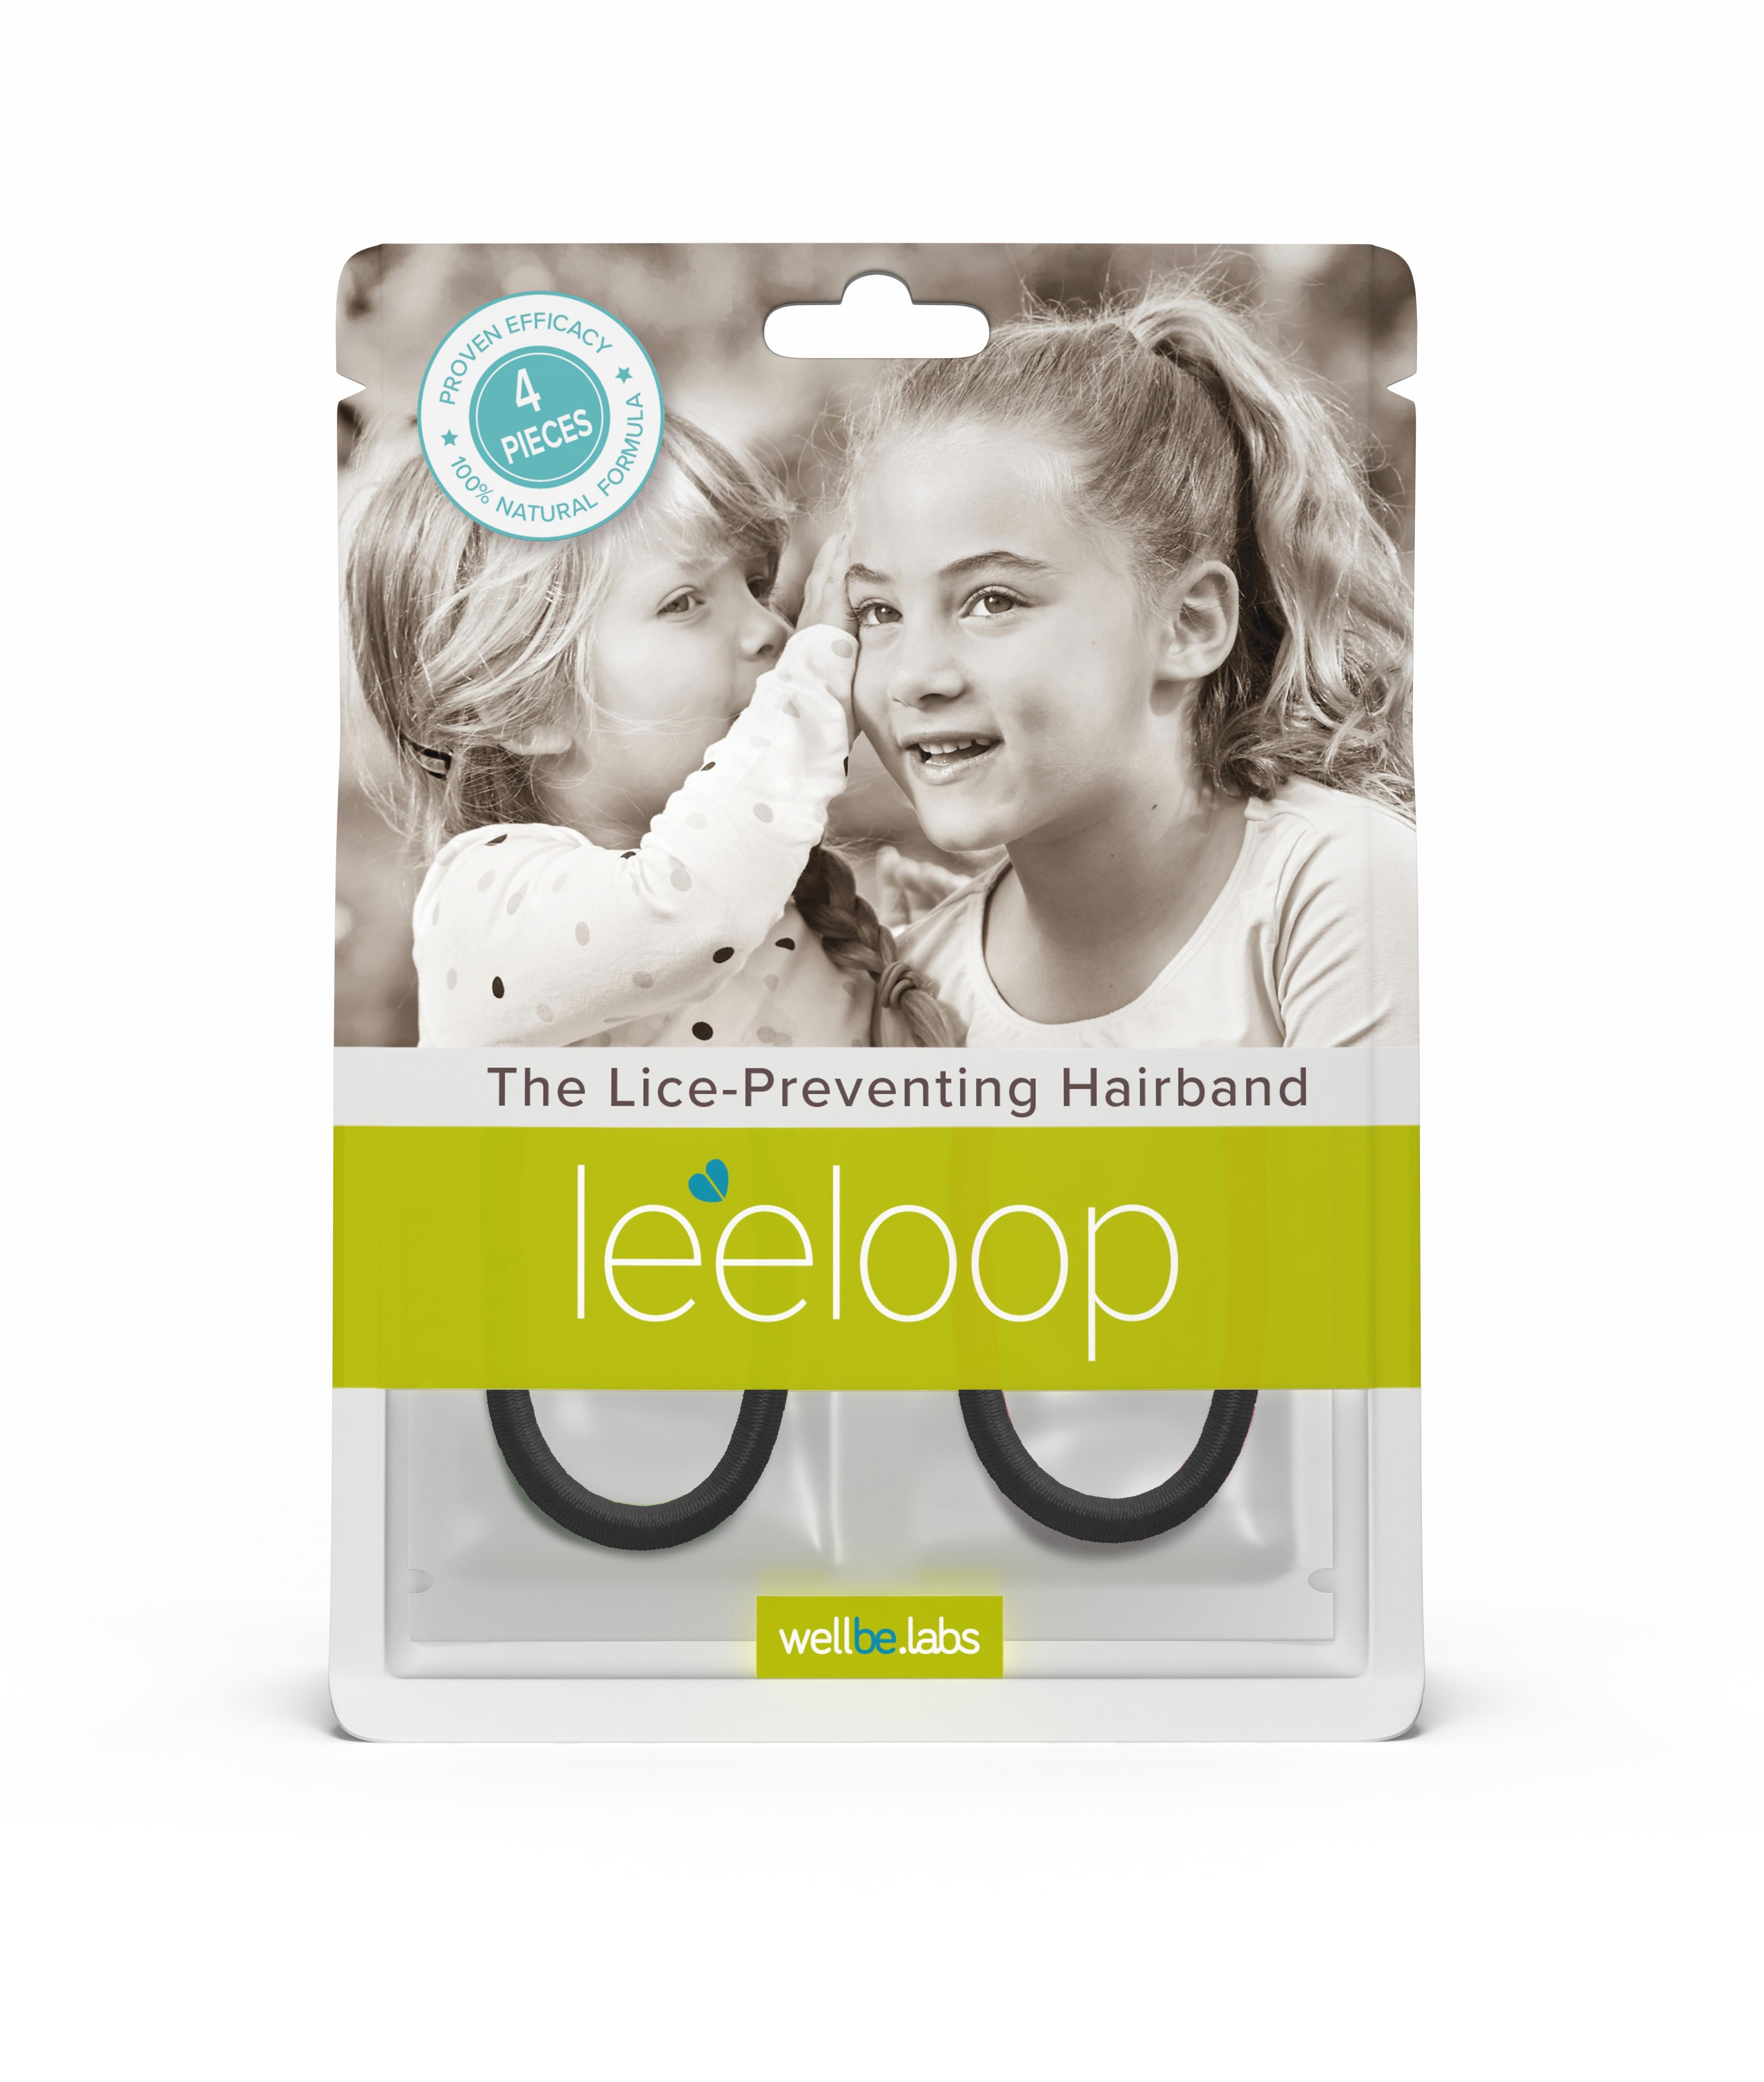 New Leeloop is a lice-preventing hairband elastic that helps protect the hair from lice infestation. Leeloop